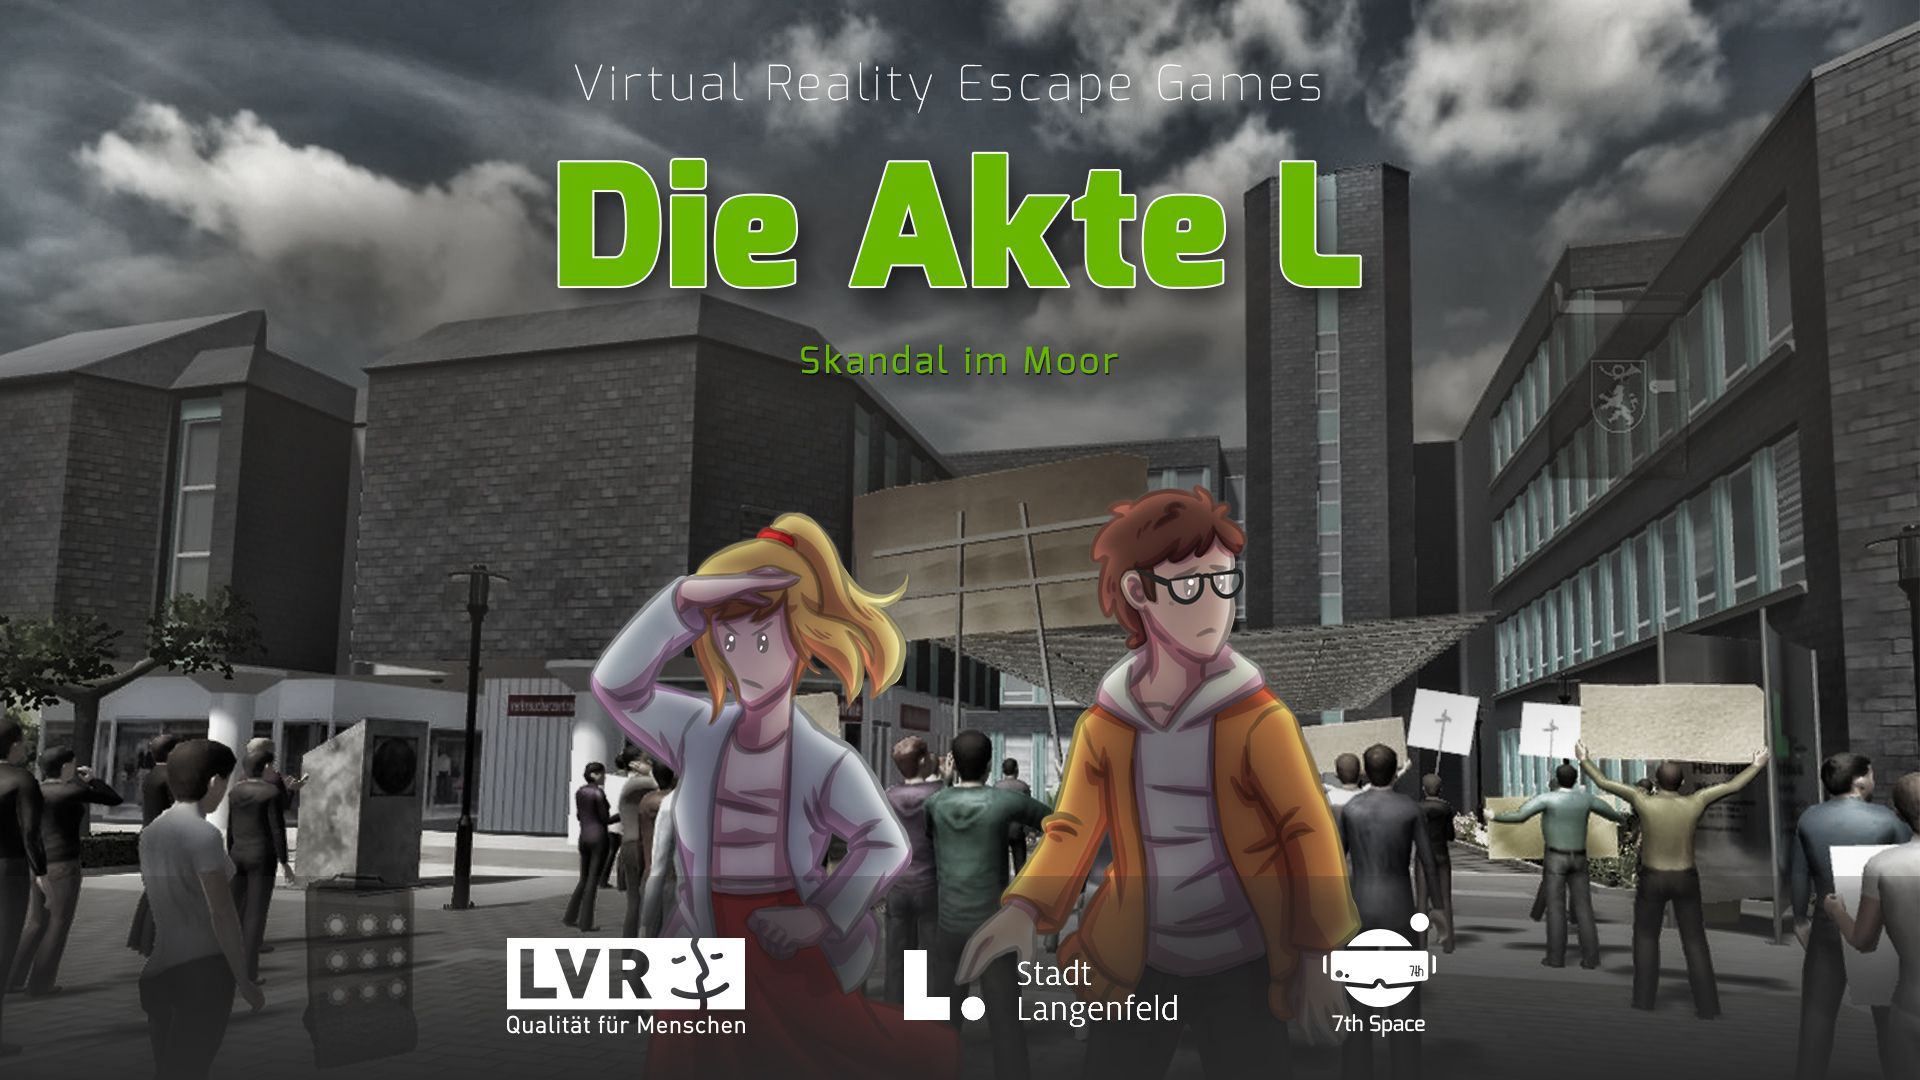 Die Akte L Cover v02 Die Akte L - Ein Umweltthriller Escape Game in VR